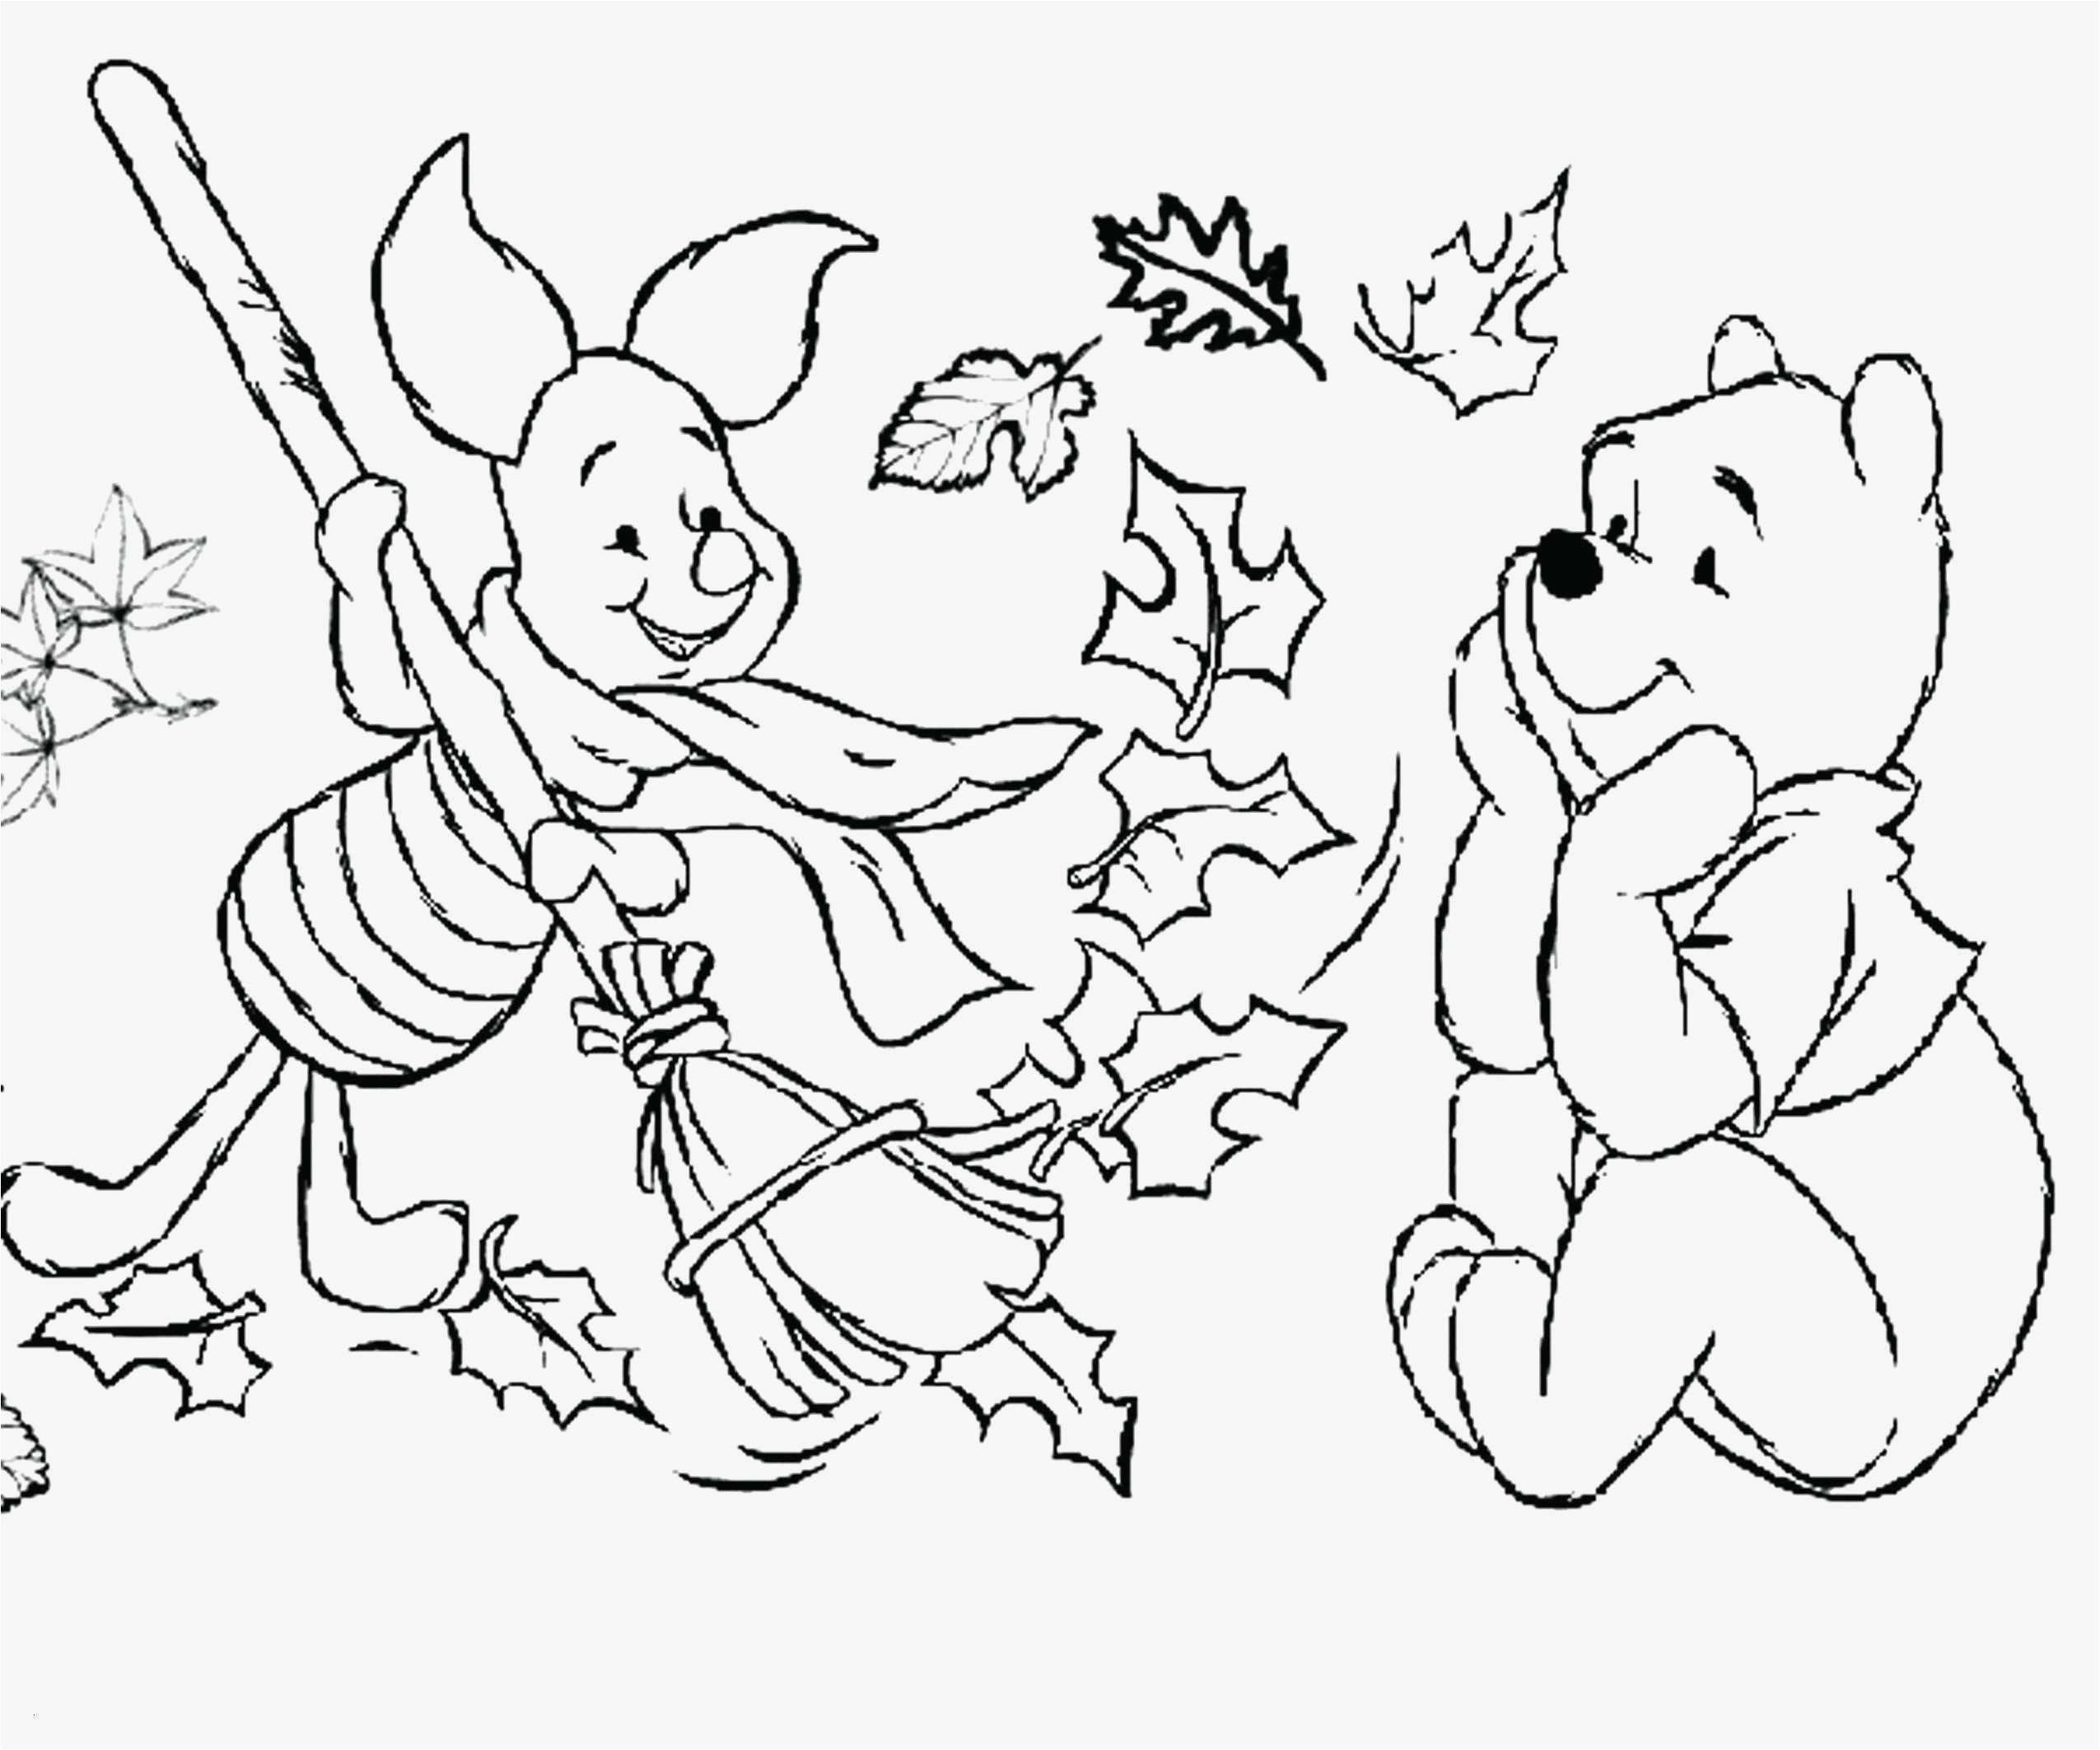 Body Coloring Pages for Preschoolers  Gallery 7o - Free For kids